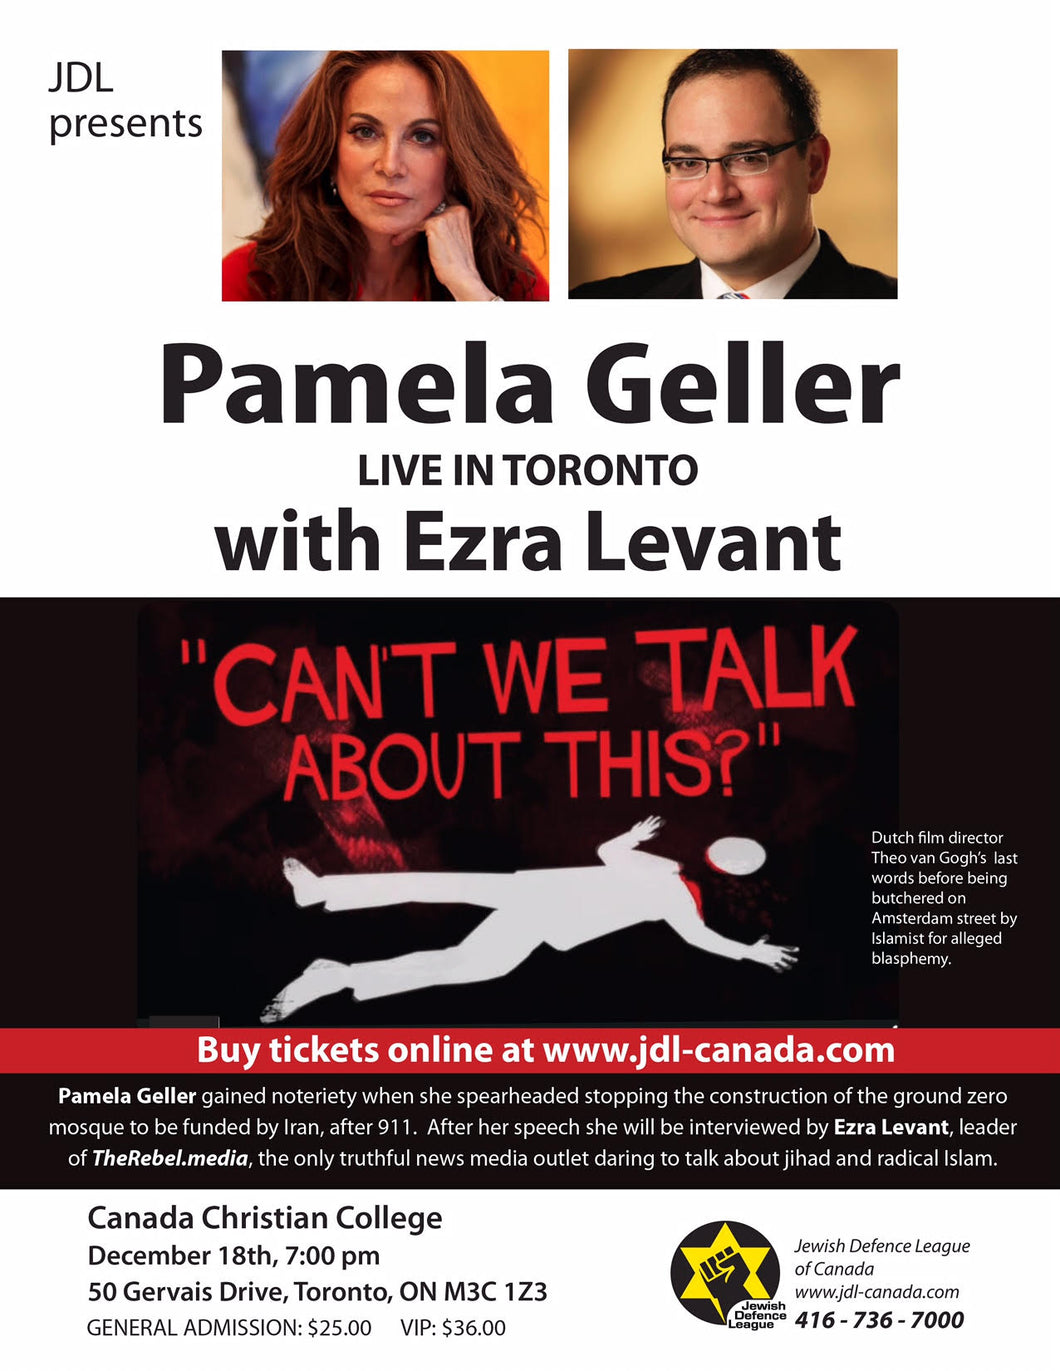 JDL Canada is proud to announce Pamela Geller's return to Toronto! Pamela Geller in Toronto: December 18, 2017 at 7pm